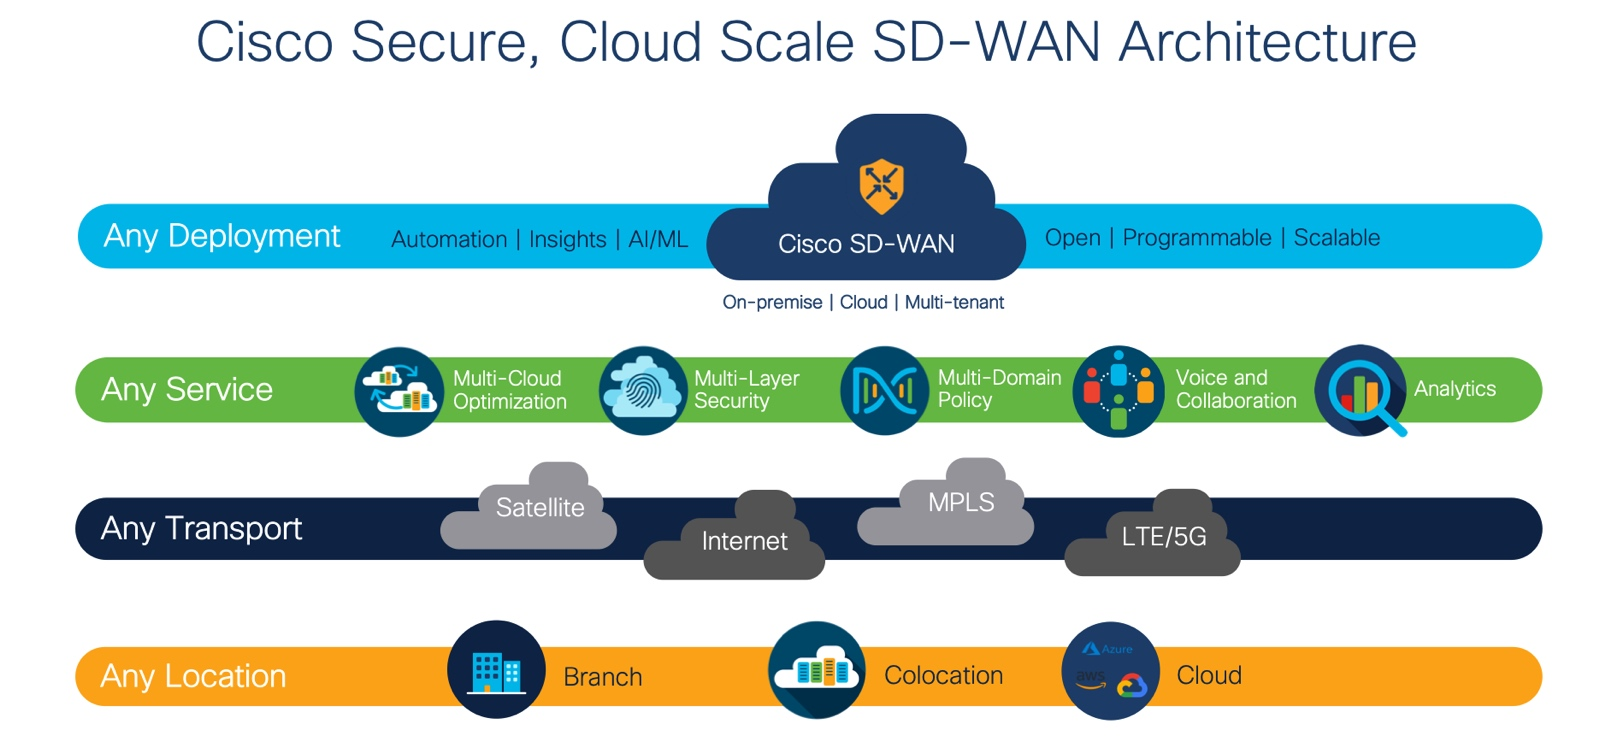 Cisco S Sd Wan Leadership Recognized By Dell Oro And By Gartner Peer Insights Cisco Blogs